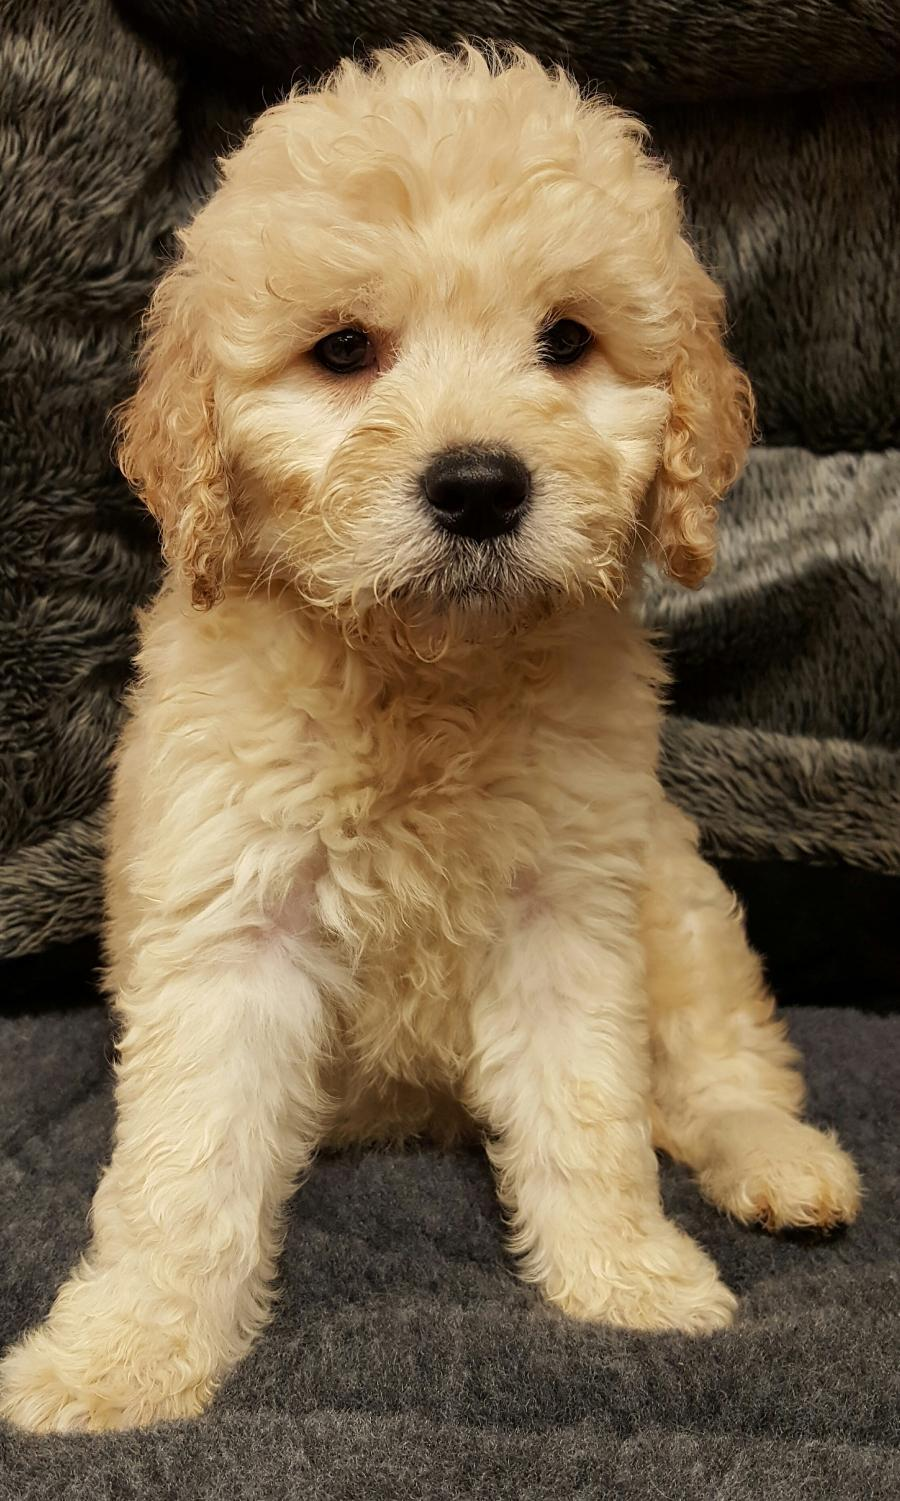 <small><del>Goldendoodle</del></small><br />Happy Goldendoodle